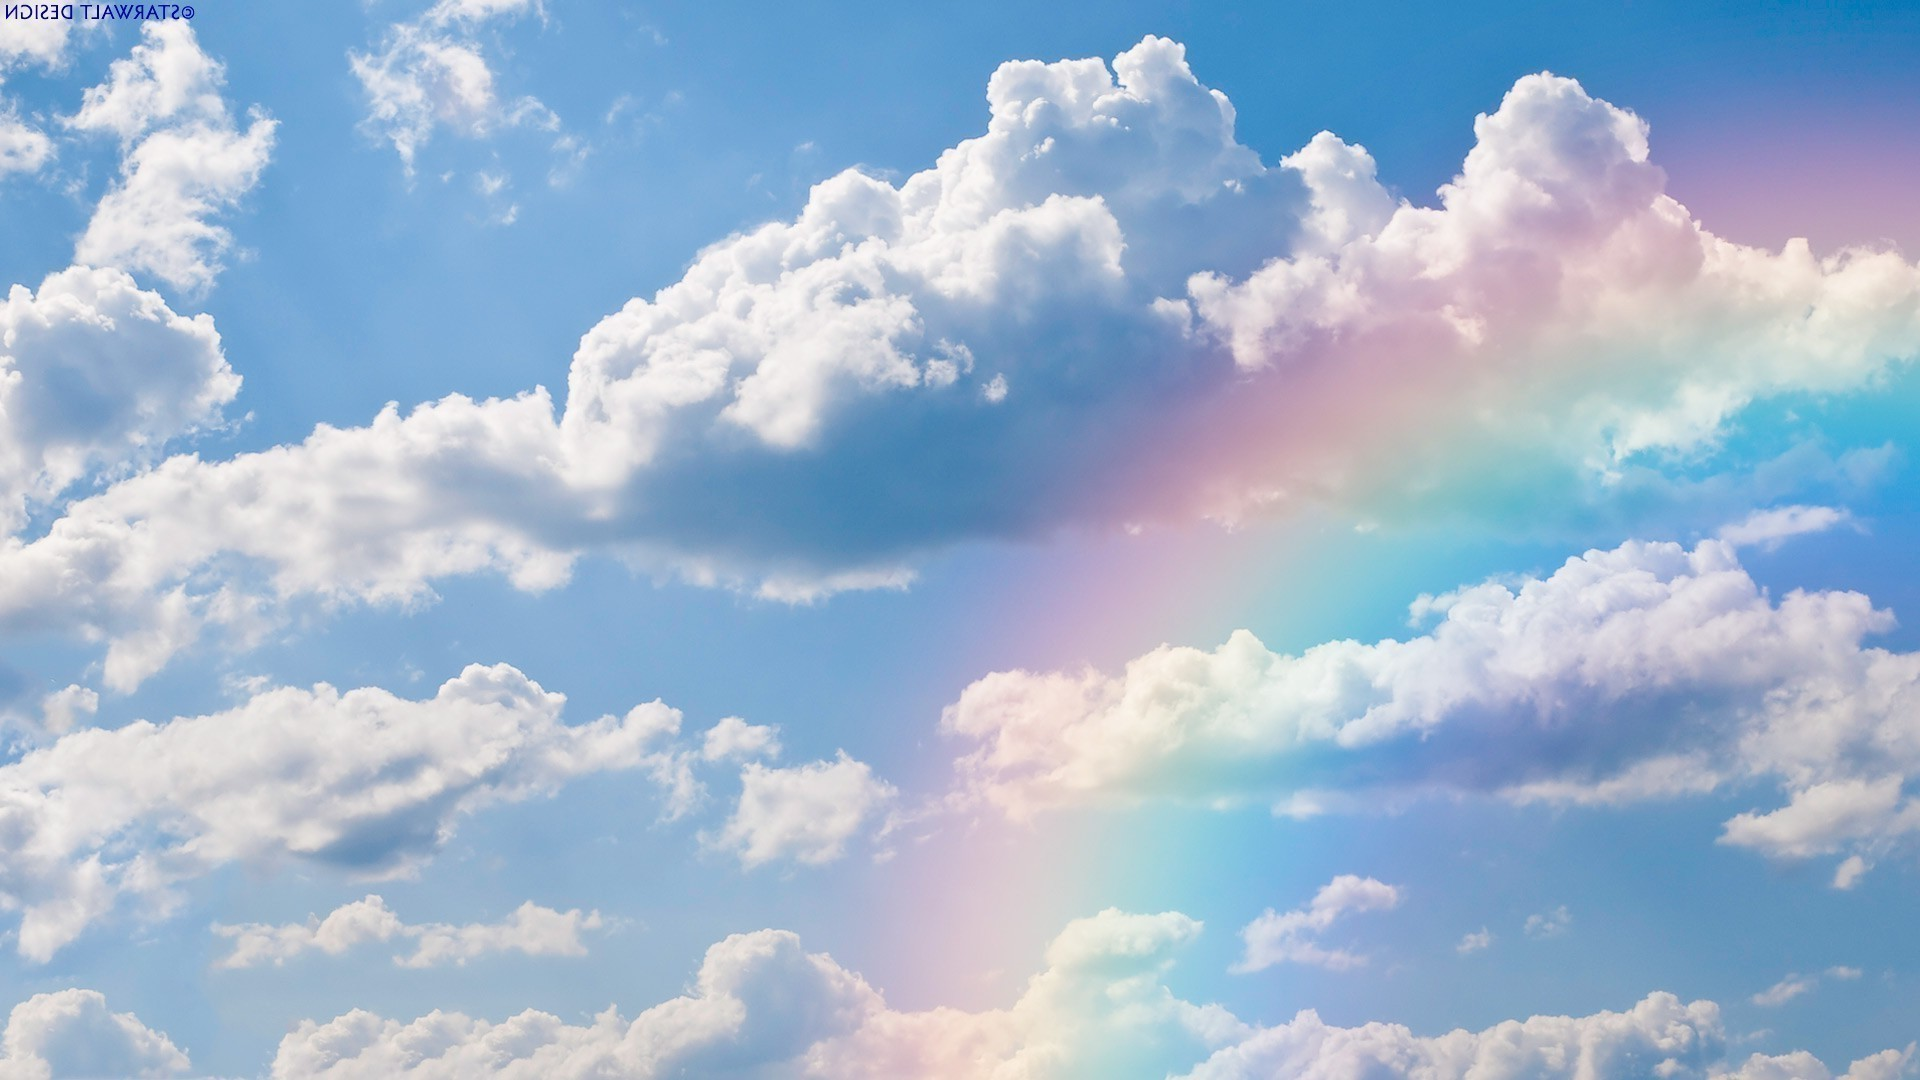 Rainbow in the clouds wallpaper 15621 1920x1080